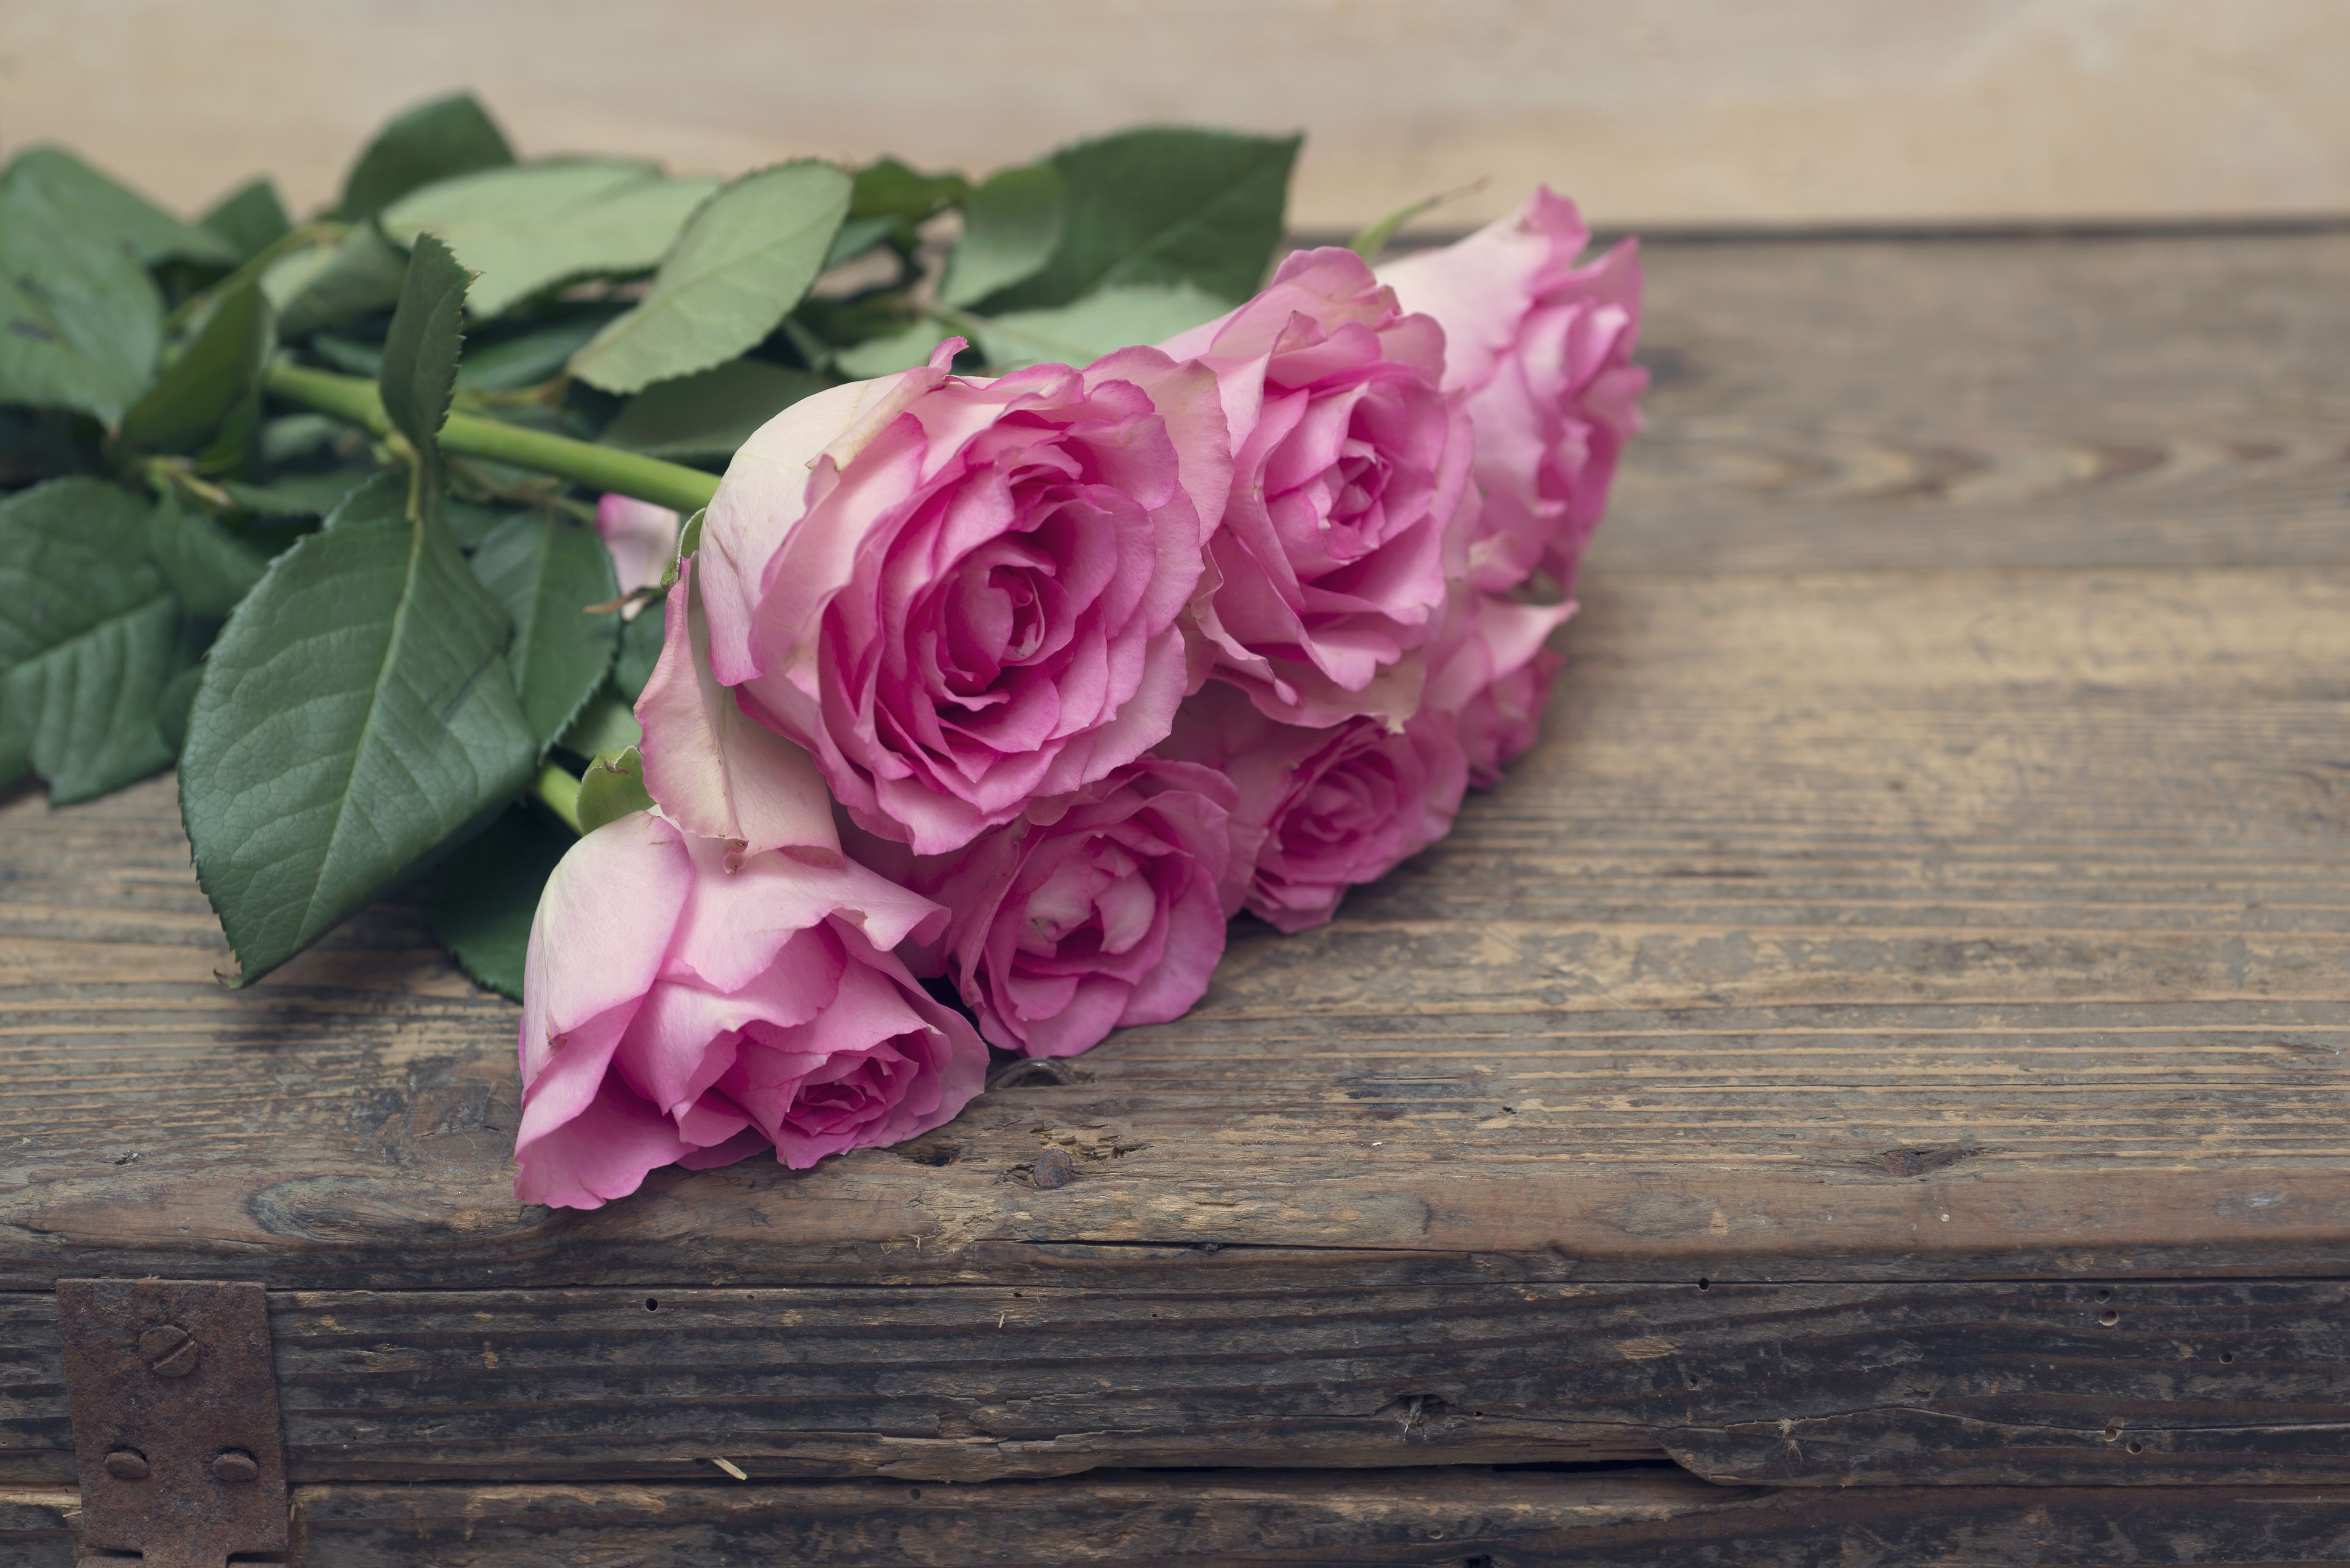 16 Romantic Flower Meanings Symbolism Of Different Kinds Of